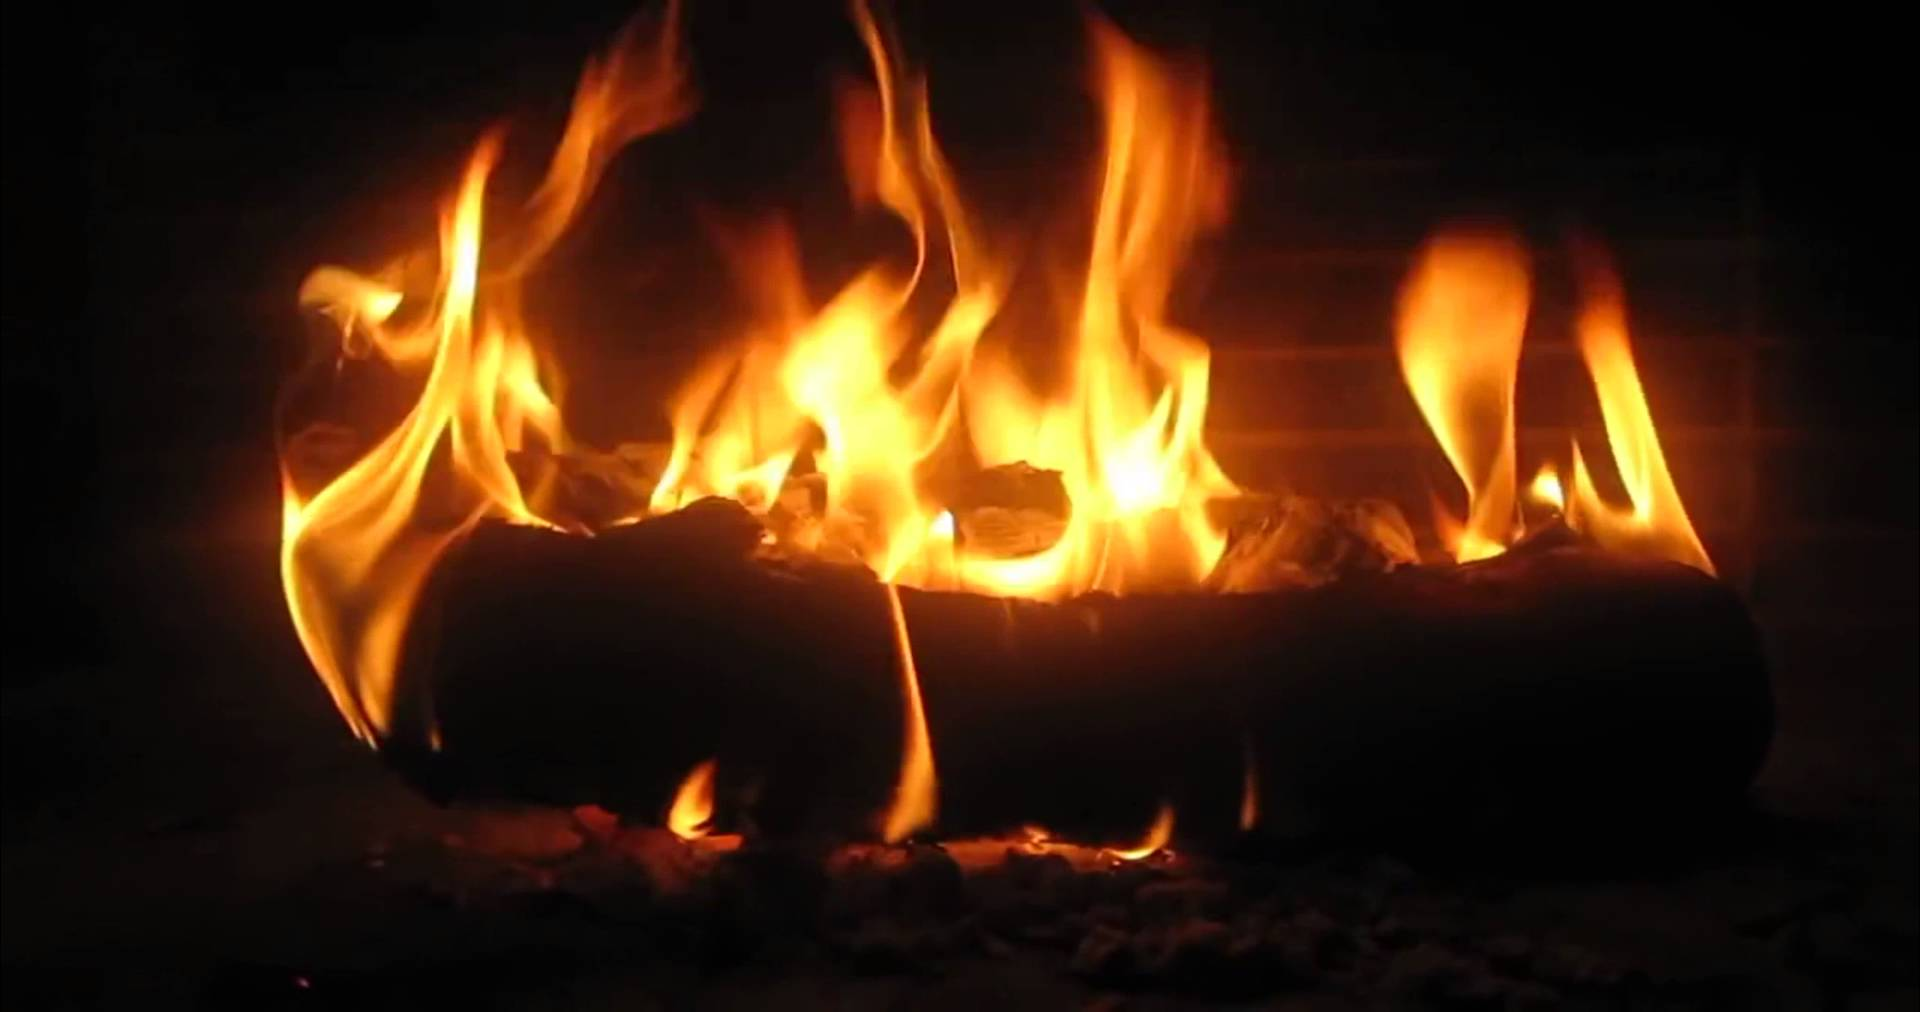 4k fireplaces wallpapers high quality download free